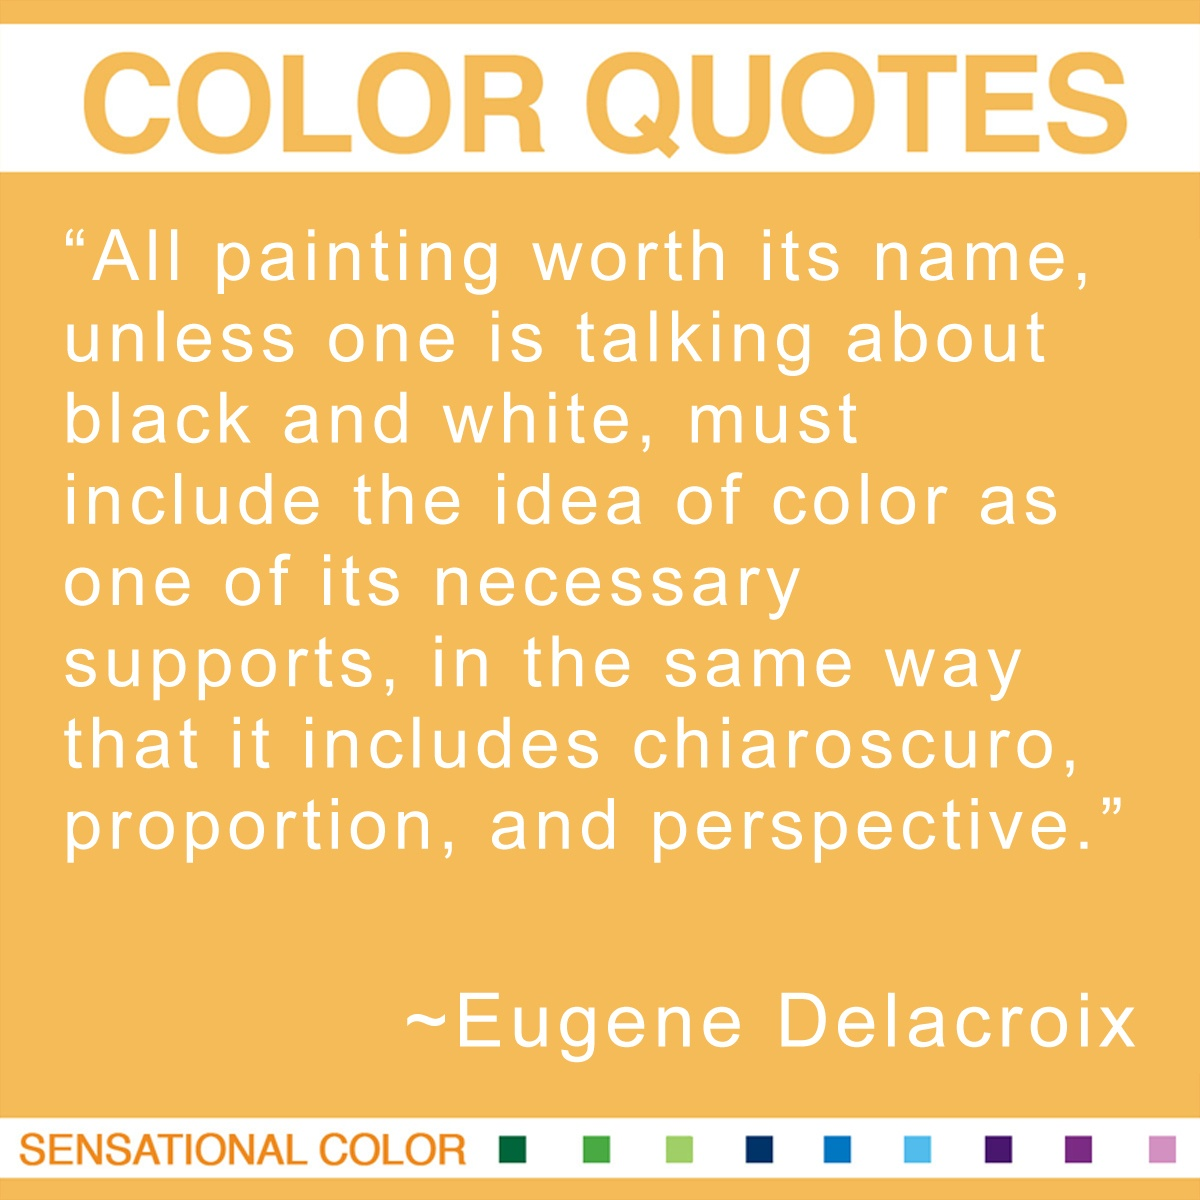 """All painting worth its name, unless one is talking about black and white, must include the idea of color as one of its necessary supports, in the same way that it includes chiaroscuro, proportion, and perspective."" - Eugene Delacroix"